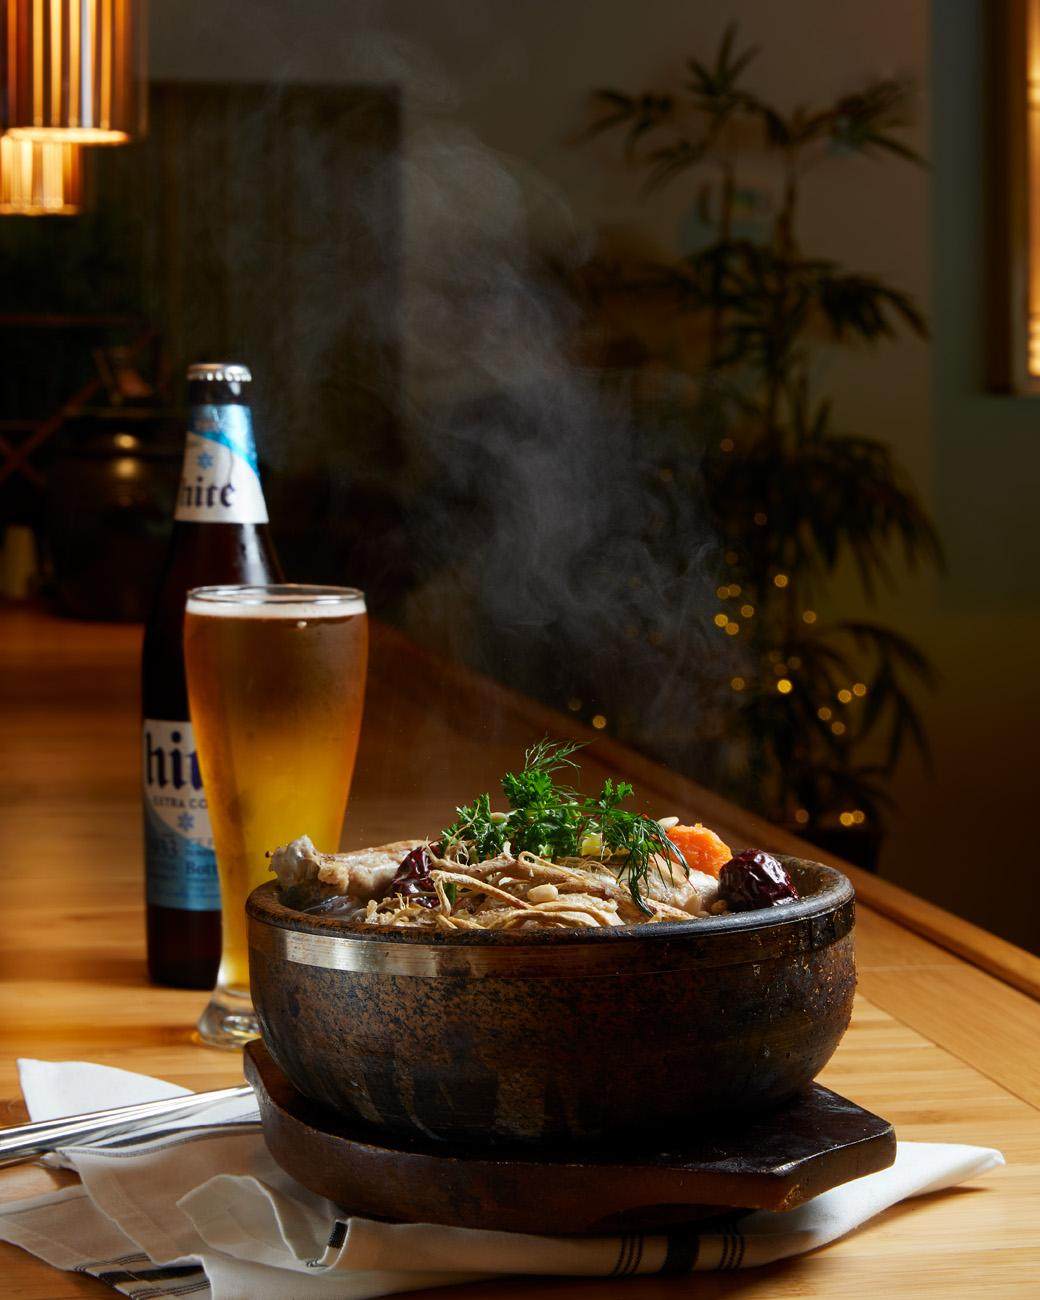 Samgyetang including whole cornish hen with simmered ginseng, garlic, and dates with a Hite Lager to drink / Image: Marlene Rounds // Published 9.18.18